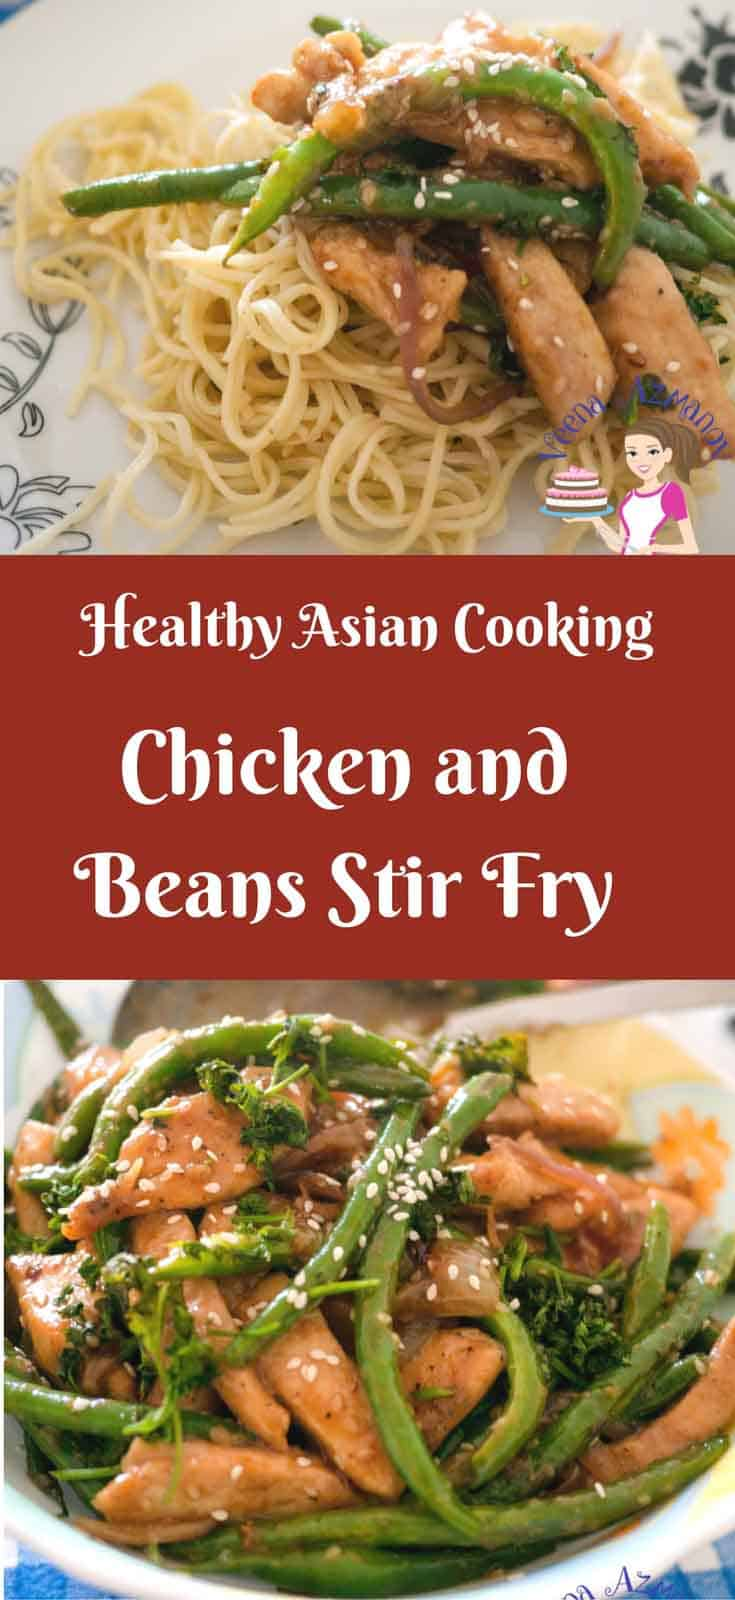 What can be more desirable on a weekday lunch? A quick and easy chicken green beans stir fry that gets done is 15 minute or less? This simple, easy and effortless recipe is not just super simple but healthy too. Crisp green beans with soft tender chicken cooked in a sweet soy based sauce topped with crunchy sesame seeds is a perfect one pot meal for any family.